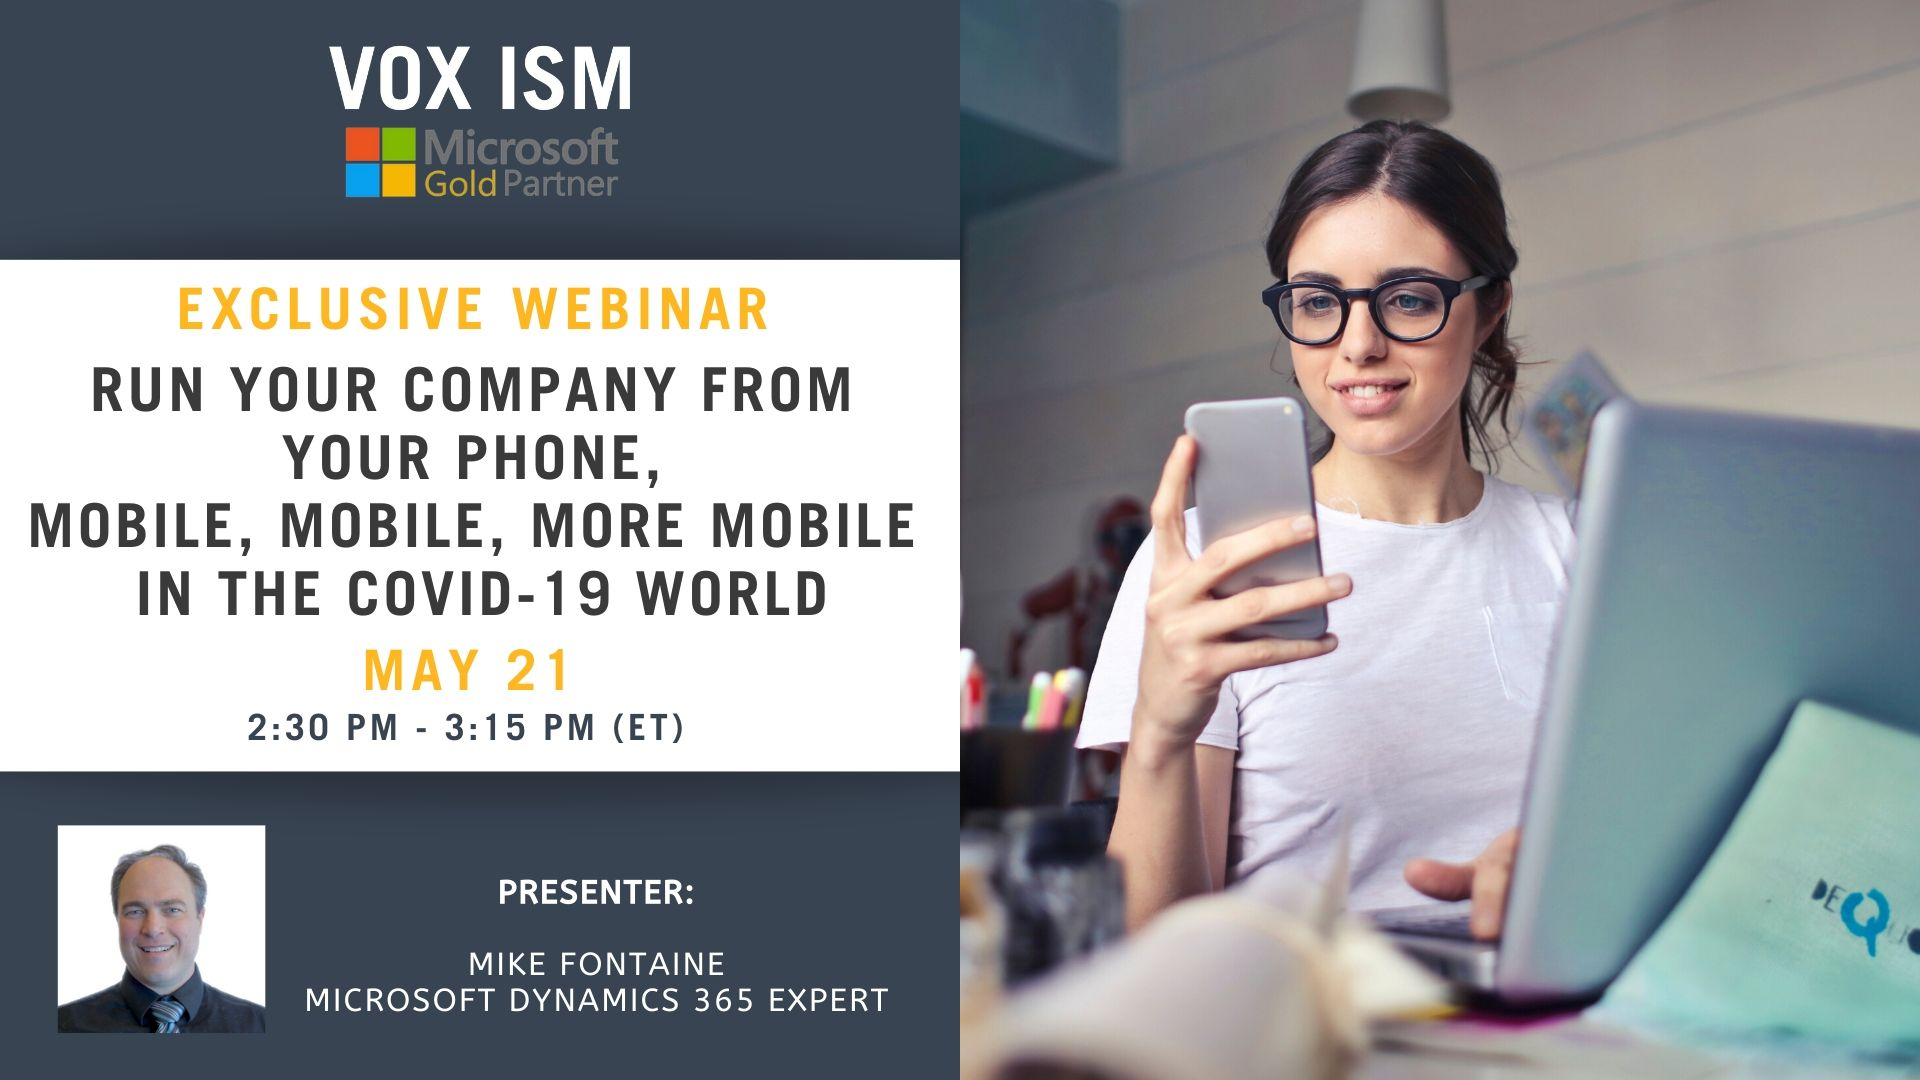 Run your company from your phone, mobile, mobile, more mobile in the COVID-19 world - May 21 - Webinar